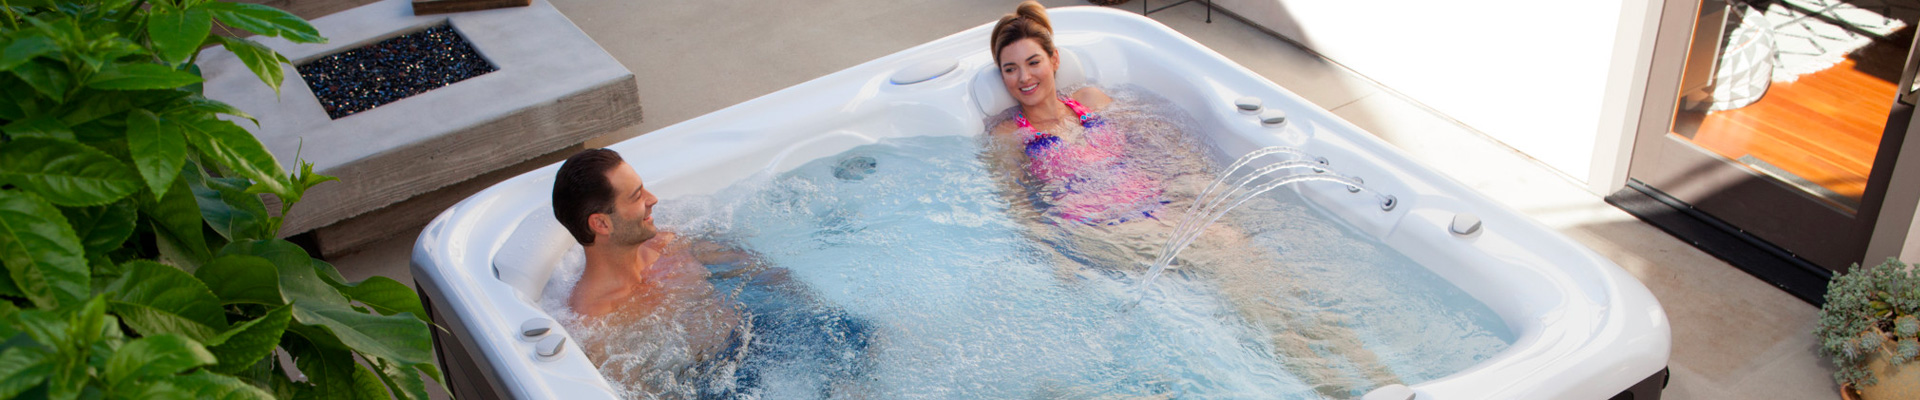 Backyard Spa Soaks for Relaxation and Well Being, Hot Tub Prices O'Fallon